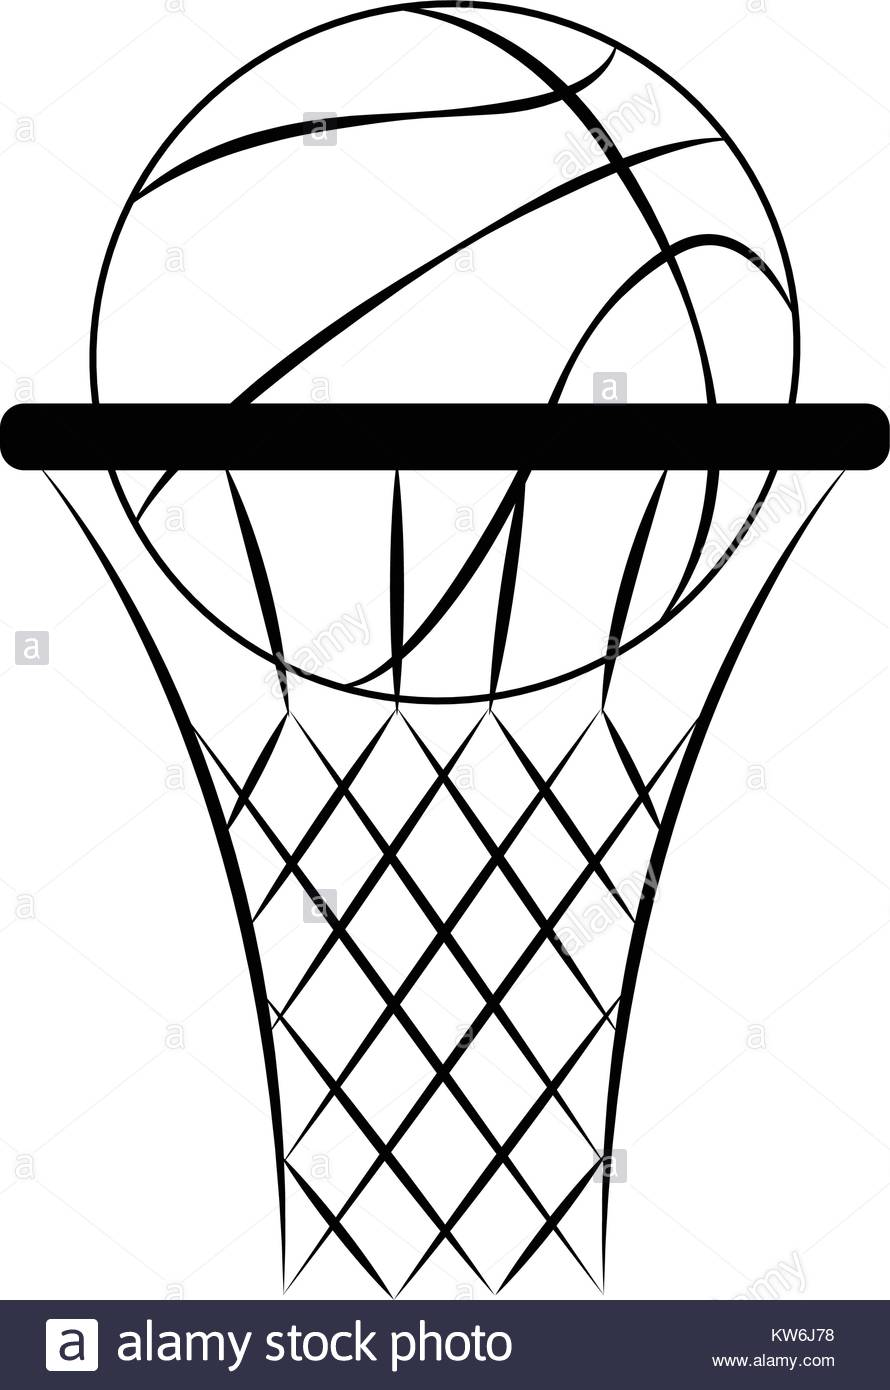 890x1390 Basket Ball Court Black And White Stock Photos Amp Images